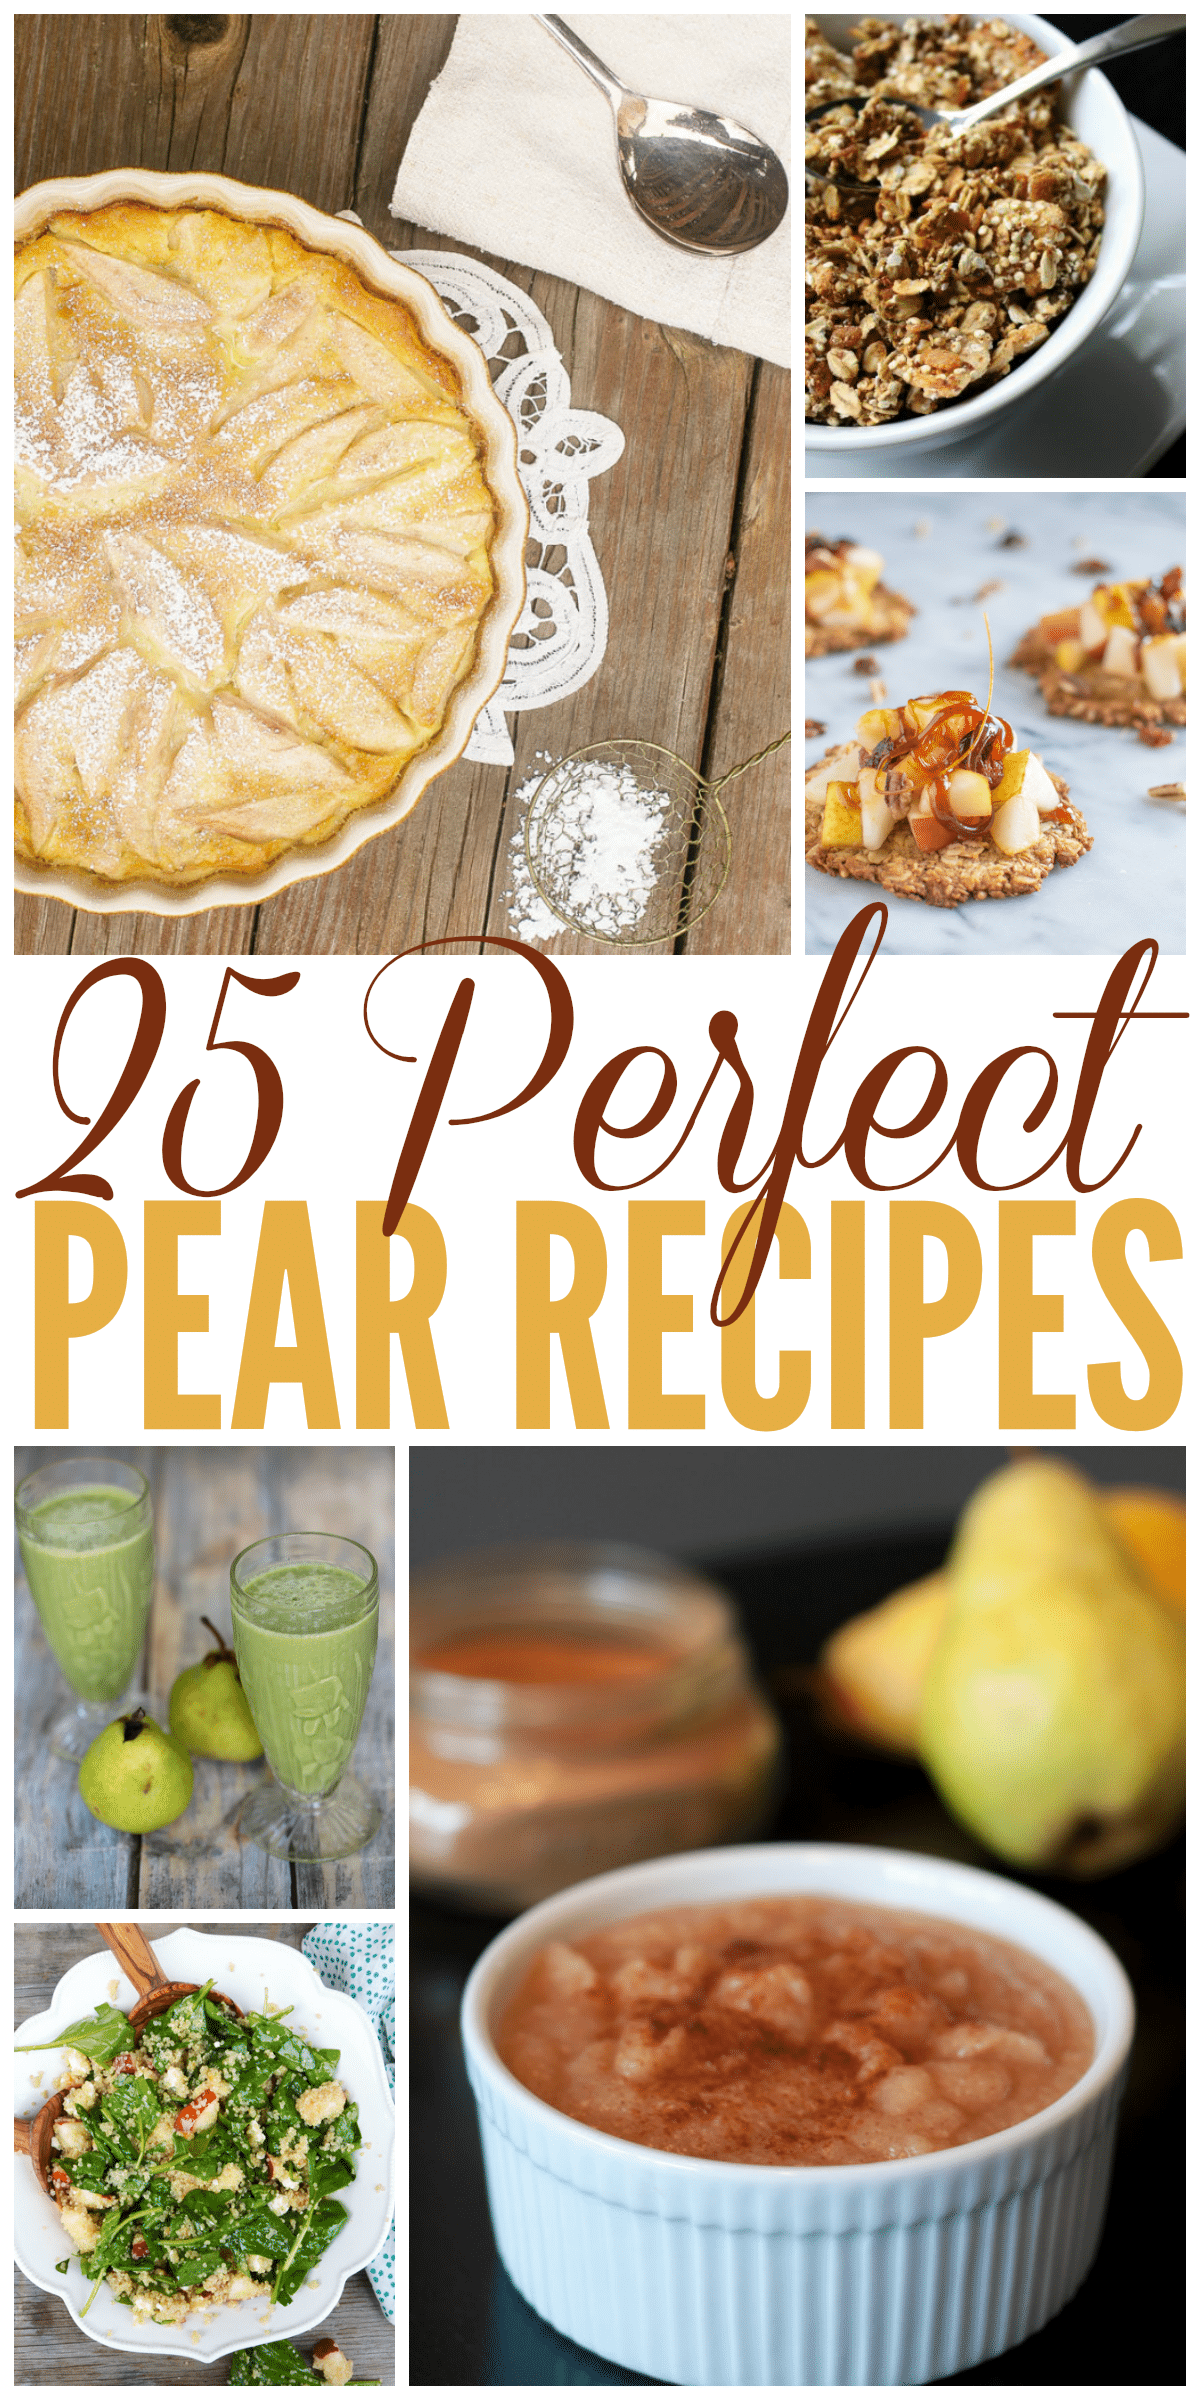 25 Perfect Pear Recipes for Fall